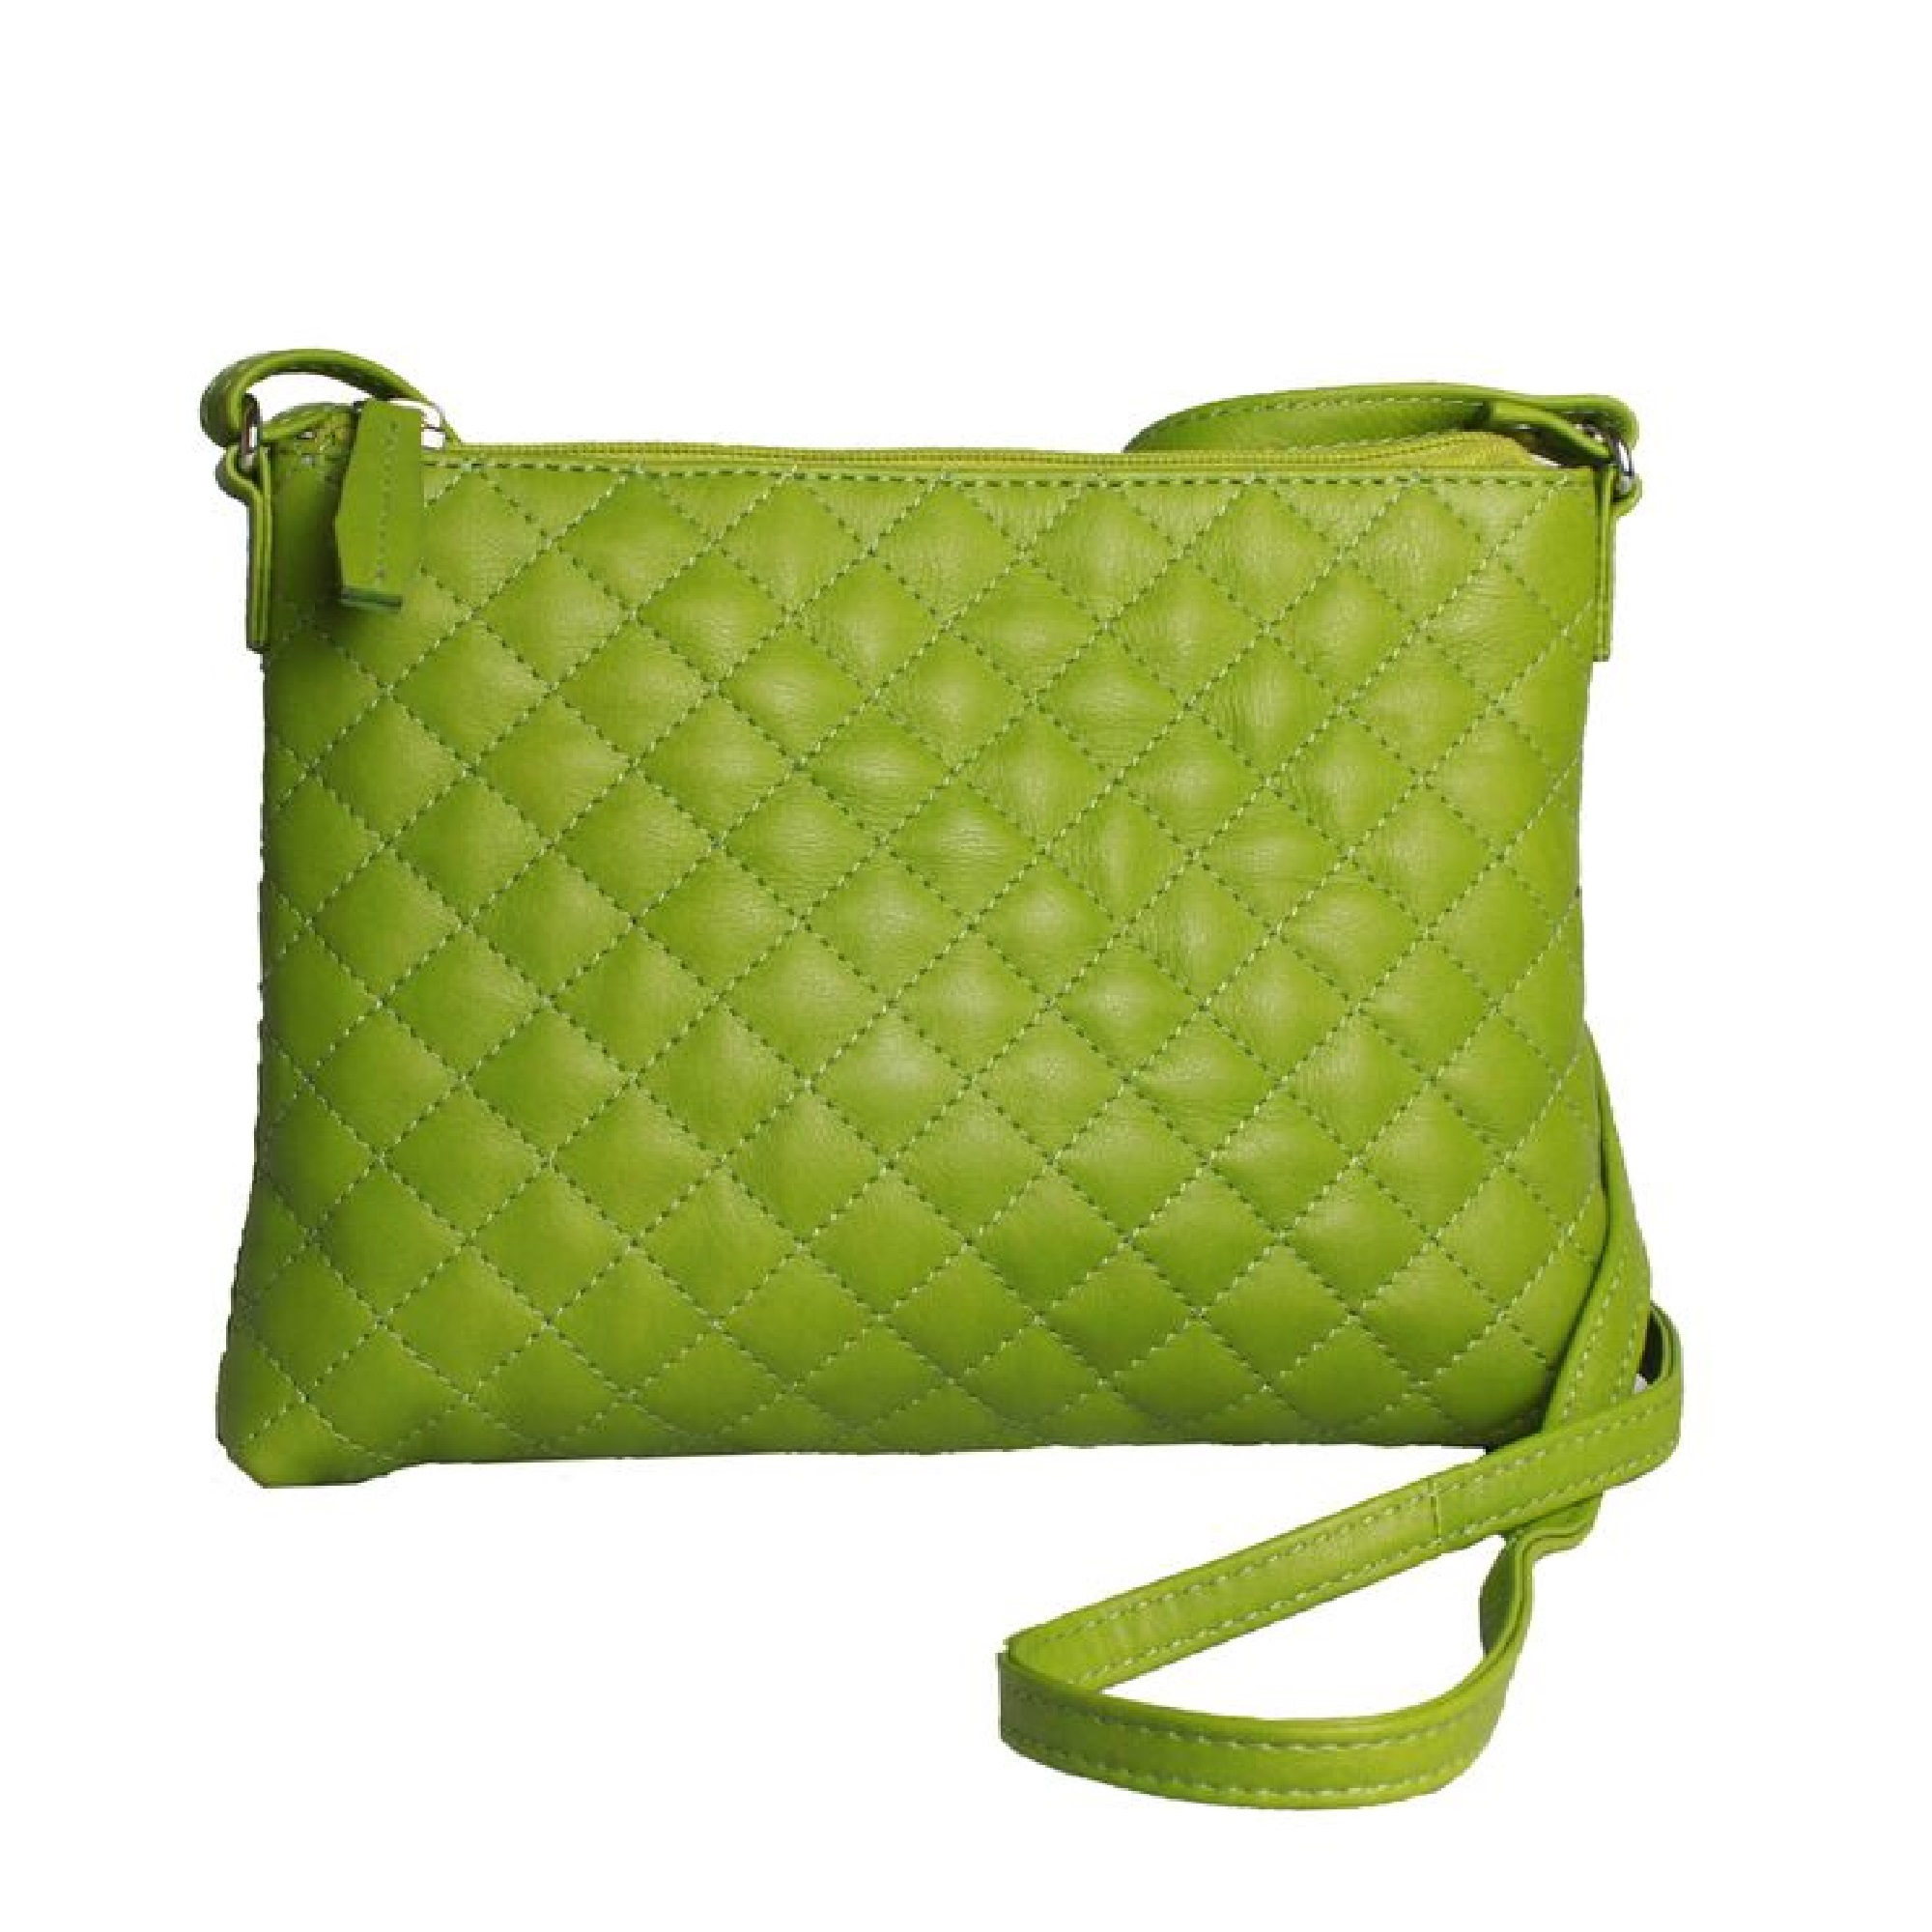 Eastern Counties Leather Womens/Ladies Rose Quilted Handbag (One size) (Parrot)